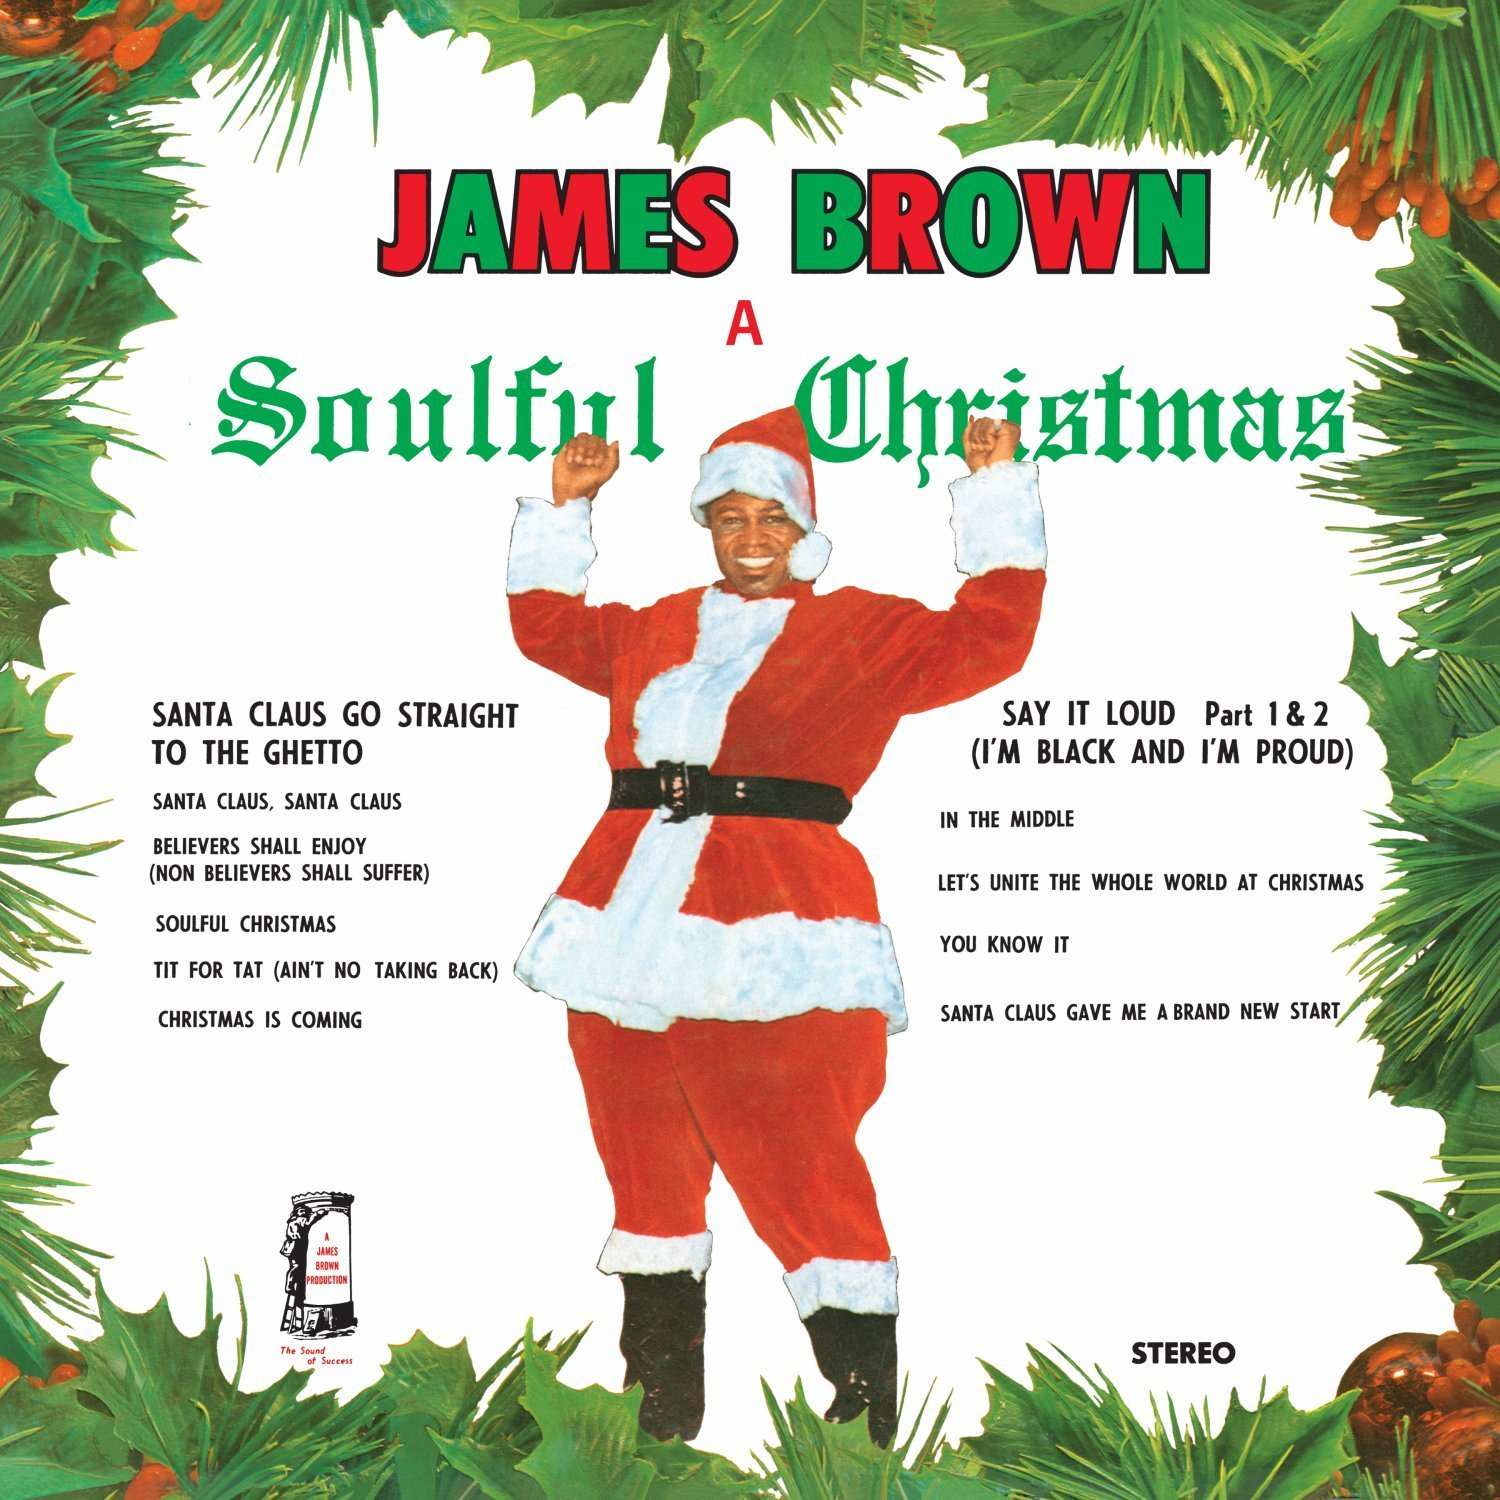 James Brown loves you...all good cheer:  Soulful Christmas and a Happy New Year. Good God.